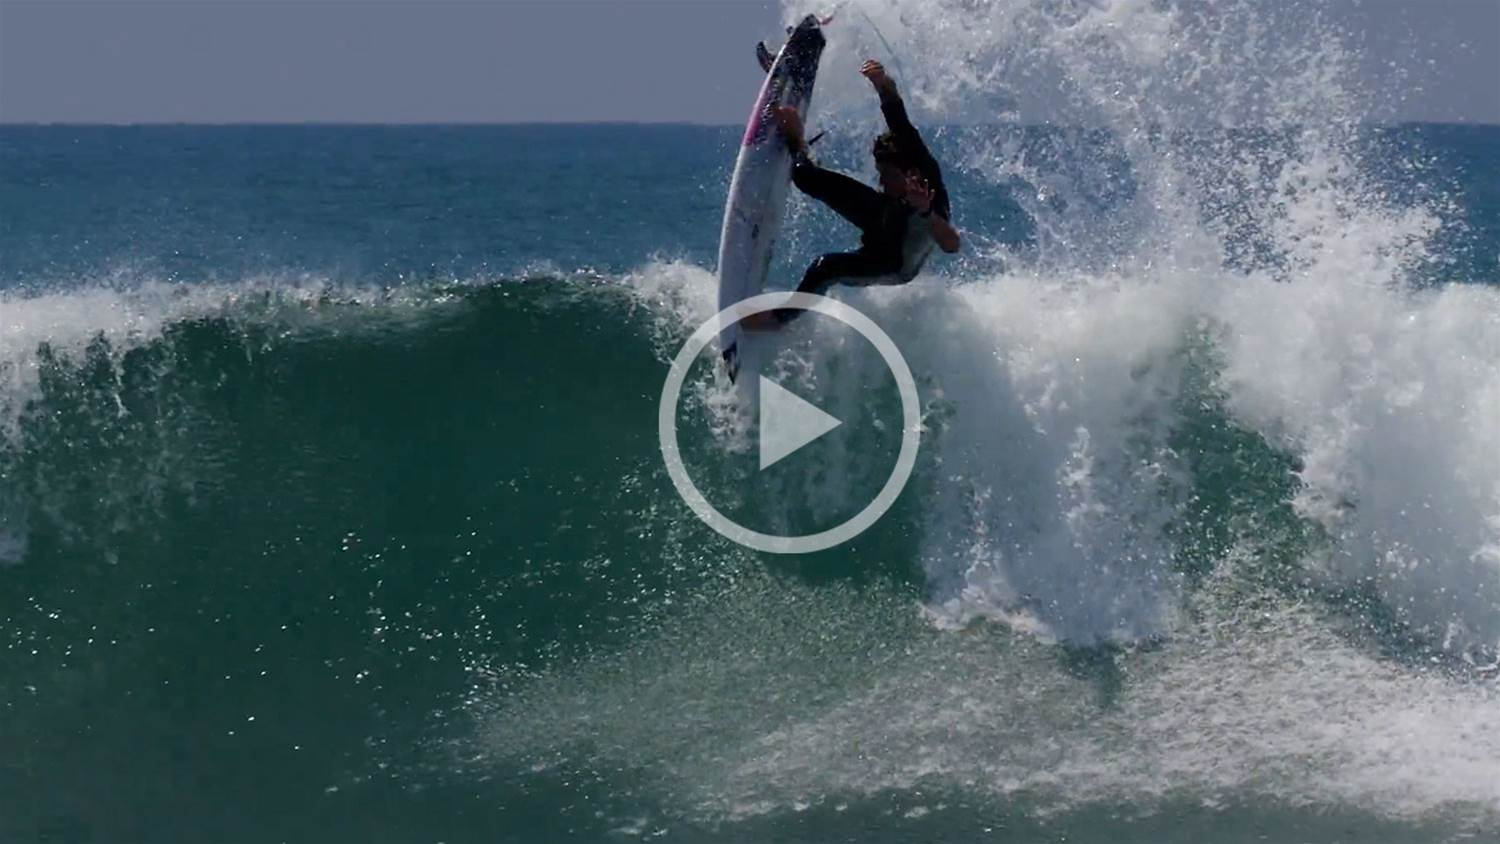 Griffin Colapinto Incinerates Lowers